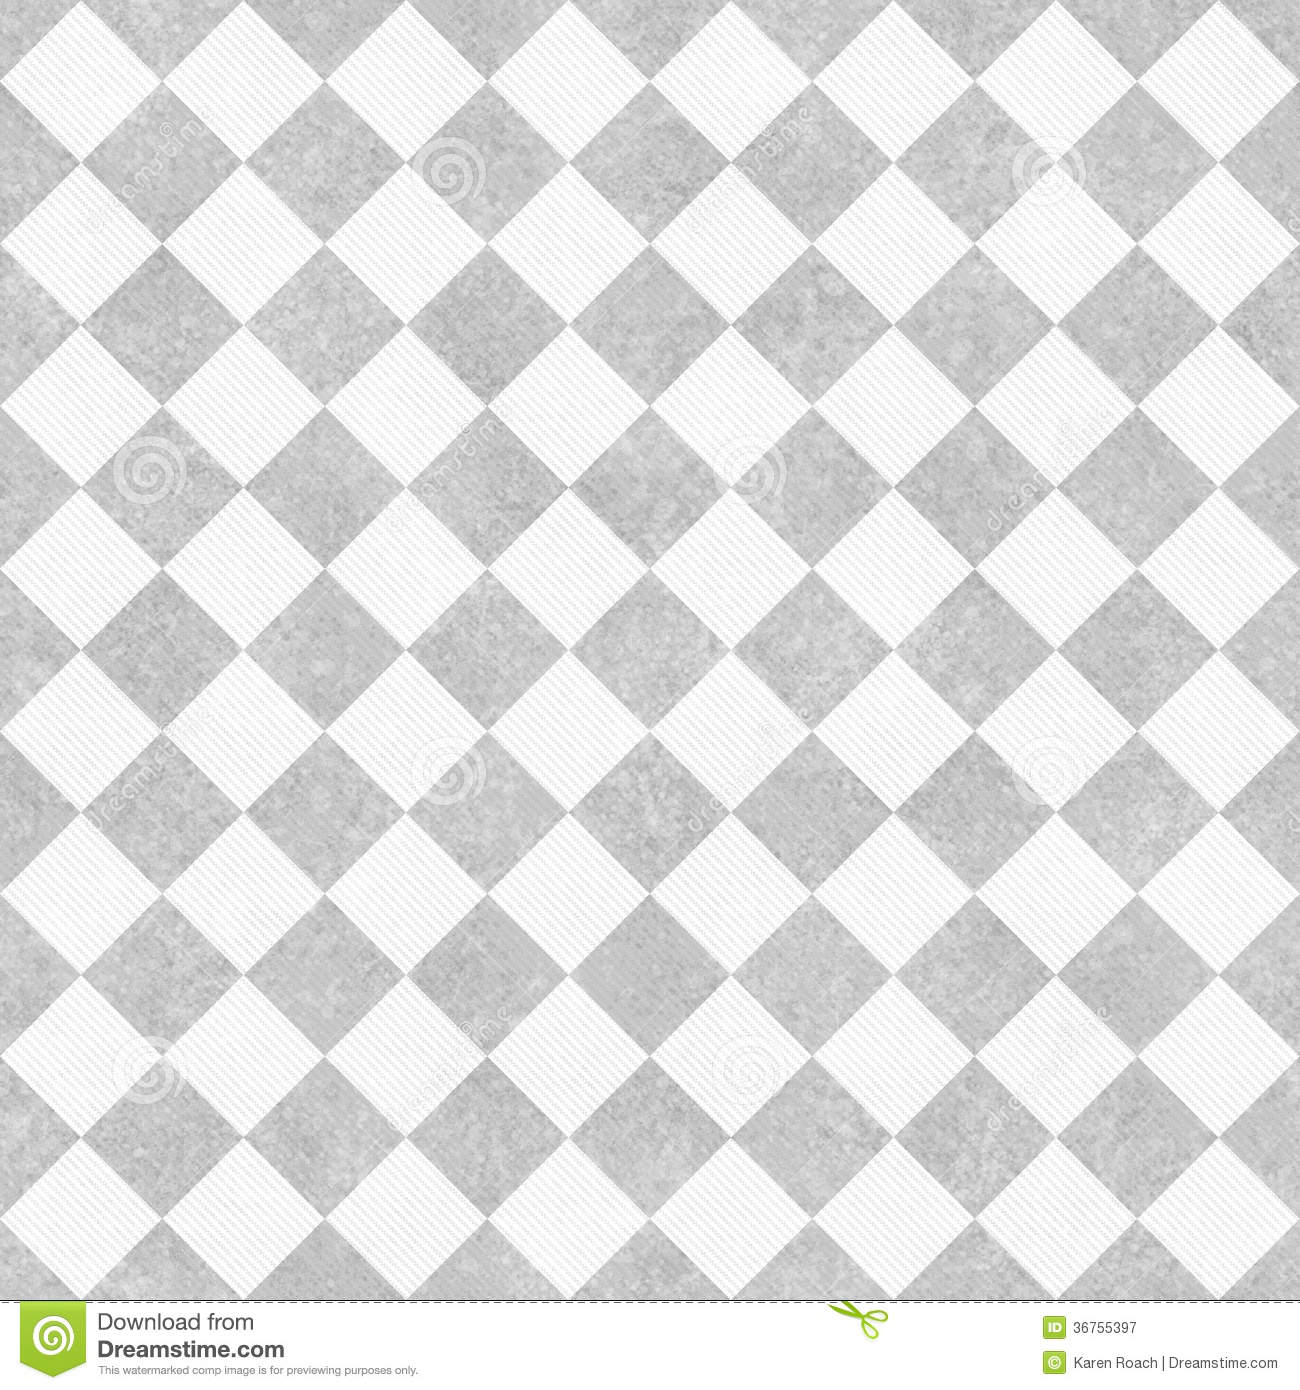 Pale Gray And White Diagonal Checkers On Textured Fabric Backgro ...